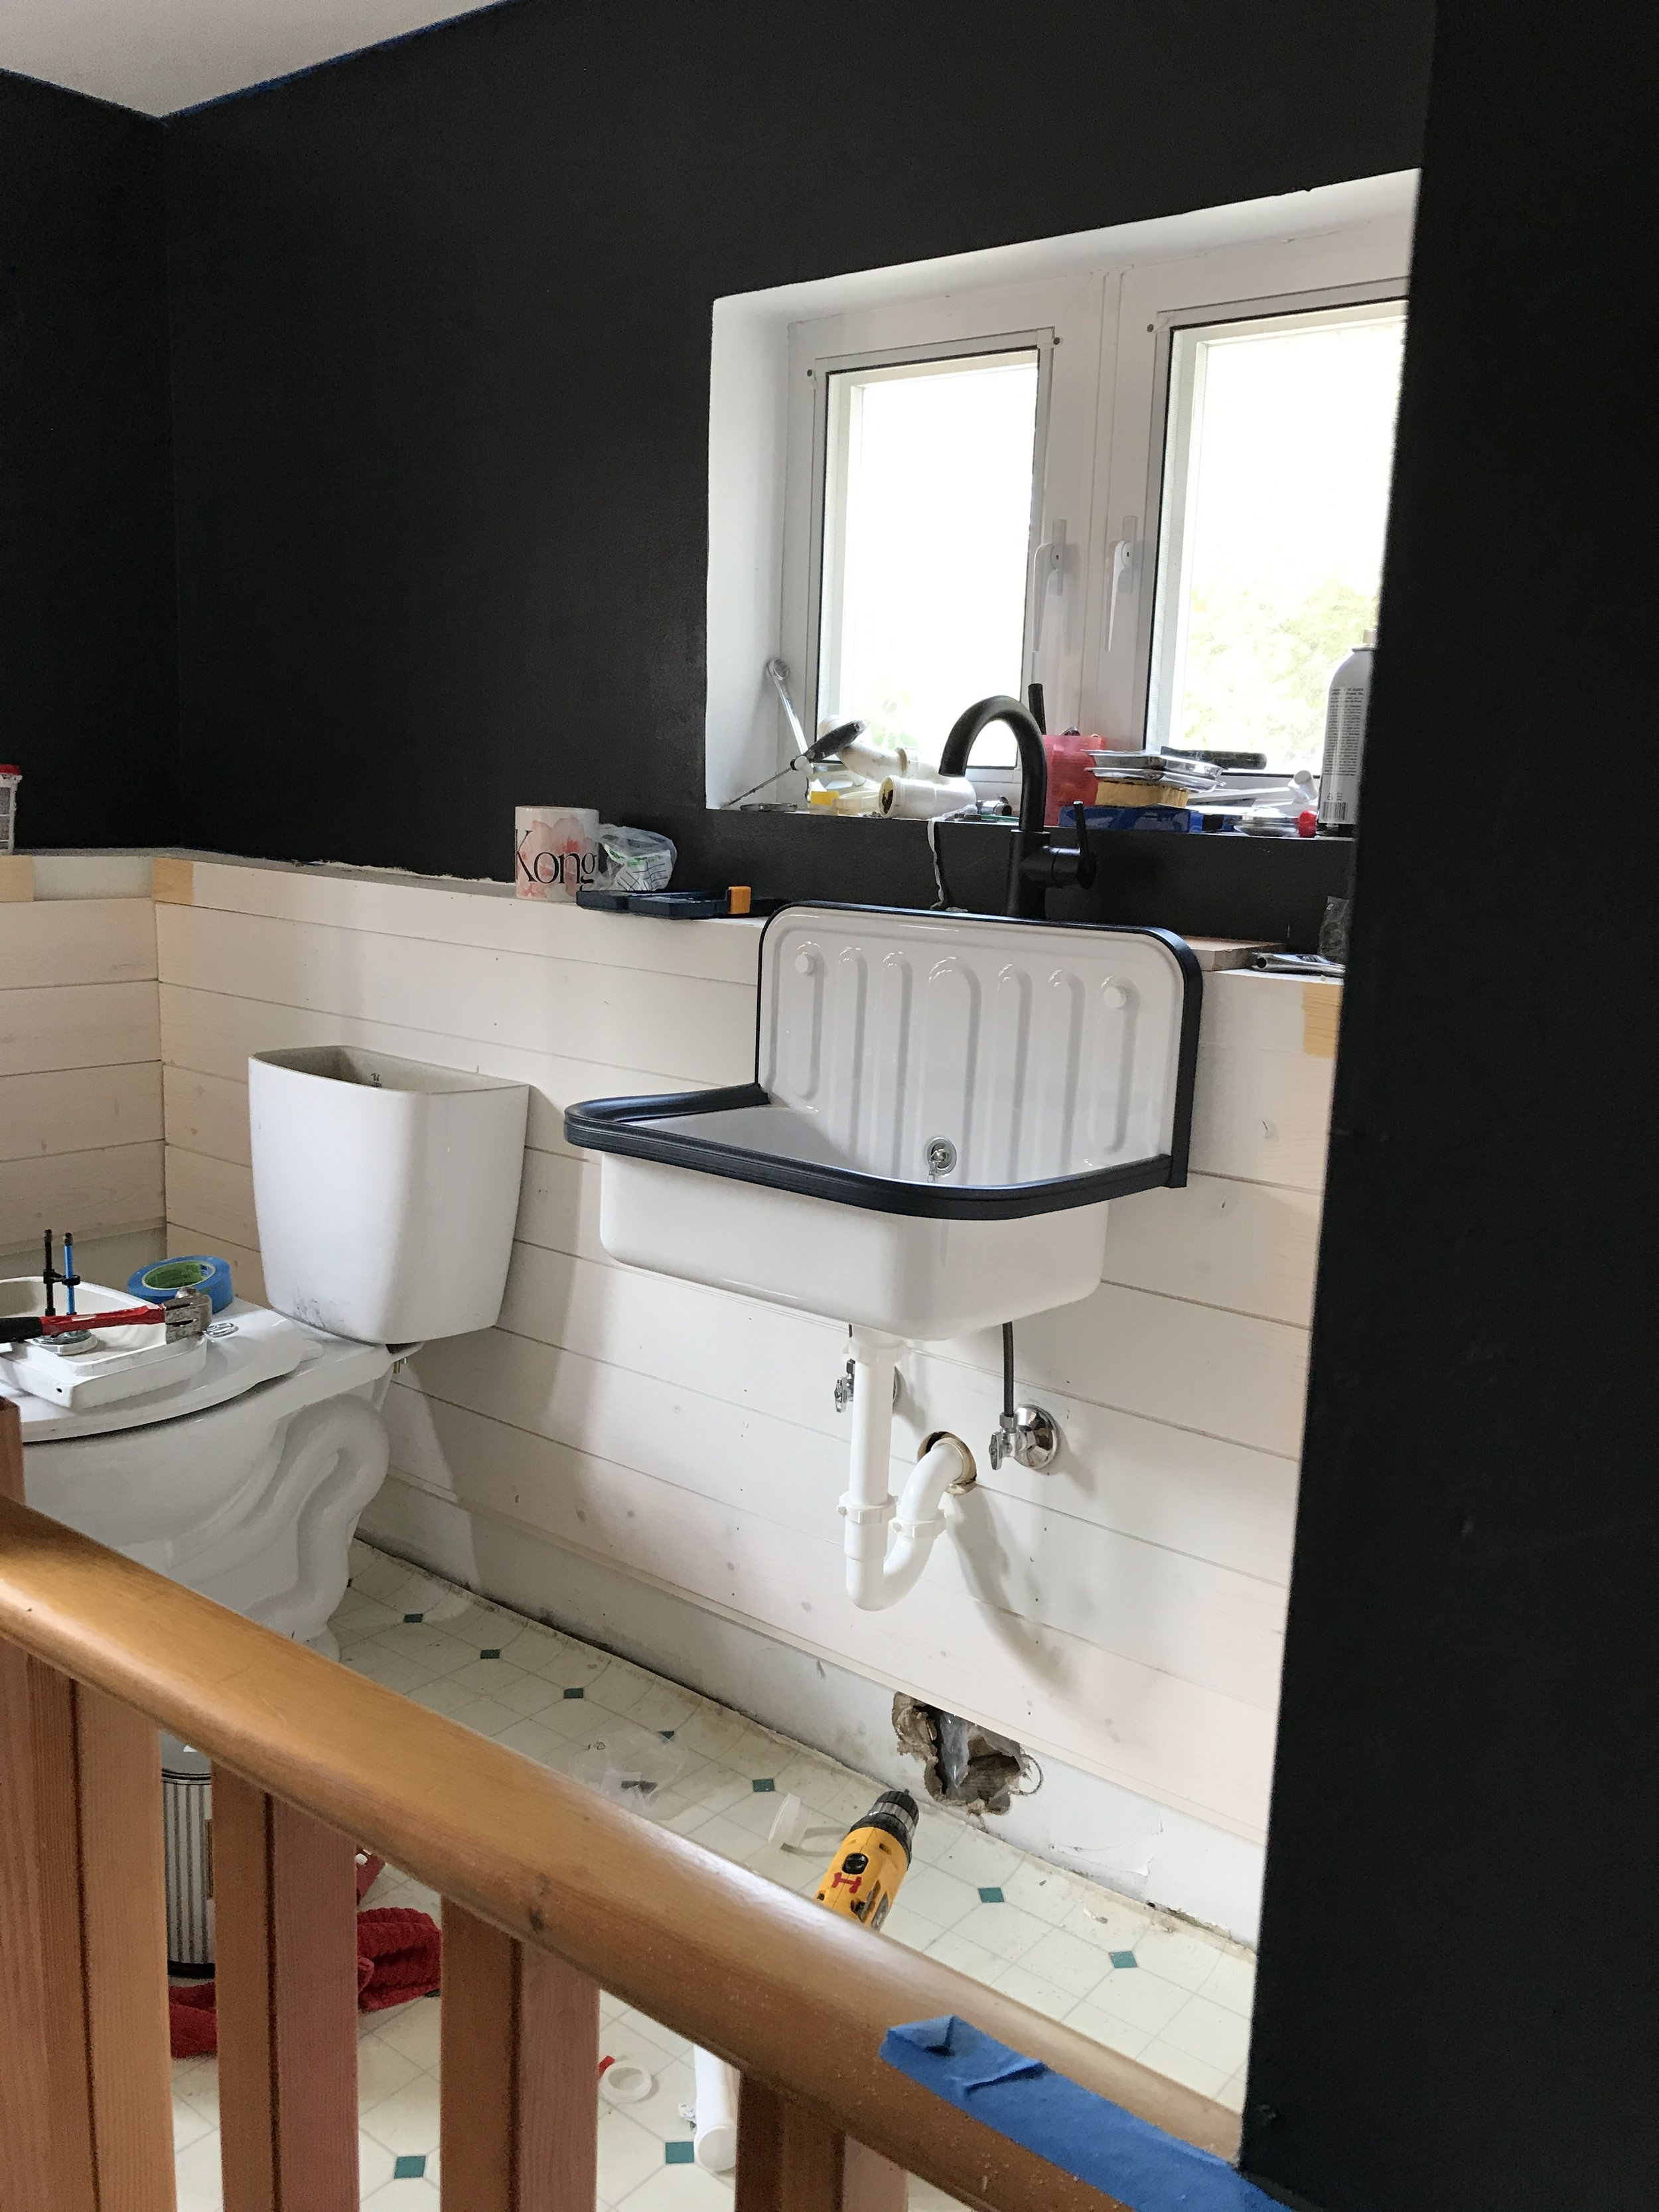 Project 8 1 Downdating The Guest Bath Installing A Faucet And The Alape Bucket Sink The Old Dockton Church